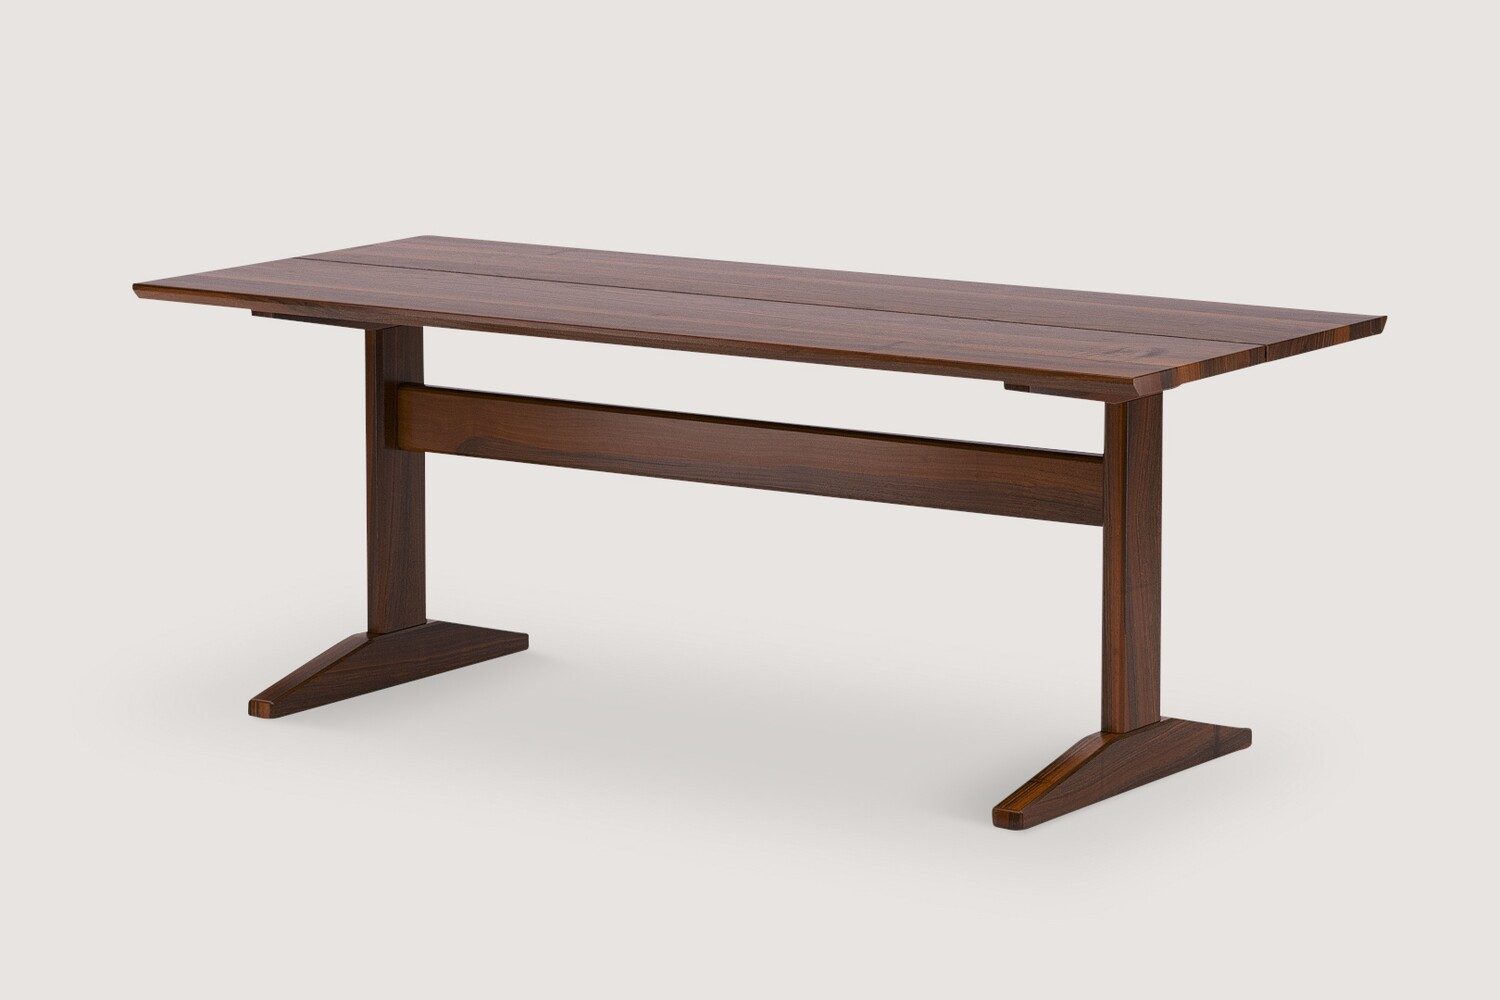 LL024 Table